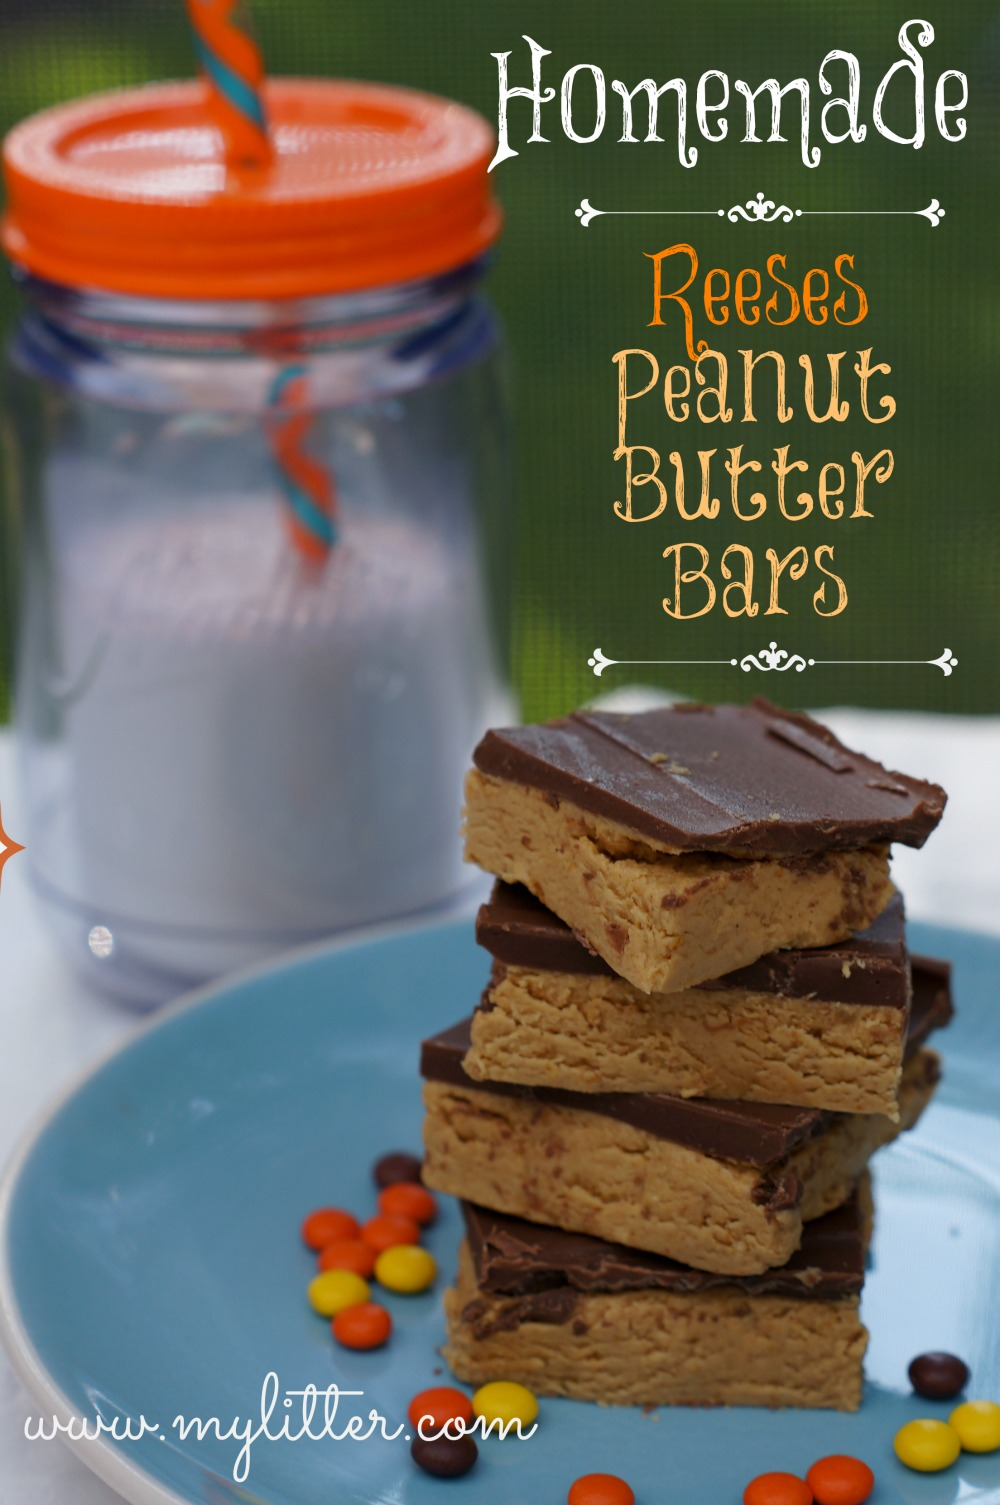 Homemade Reese's Peanut Butter Cups/Bar Recipe - MyLitter - One Deal ...